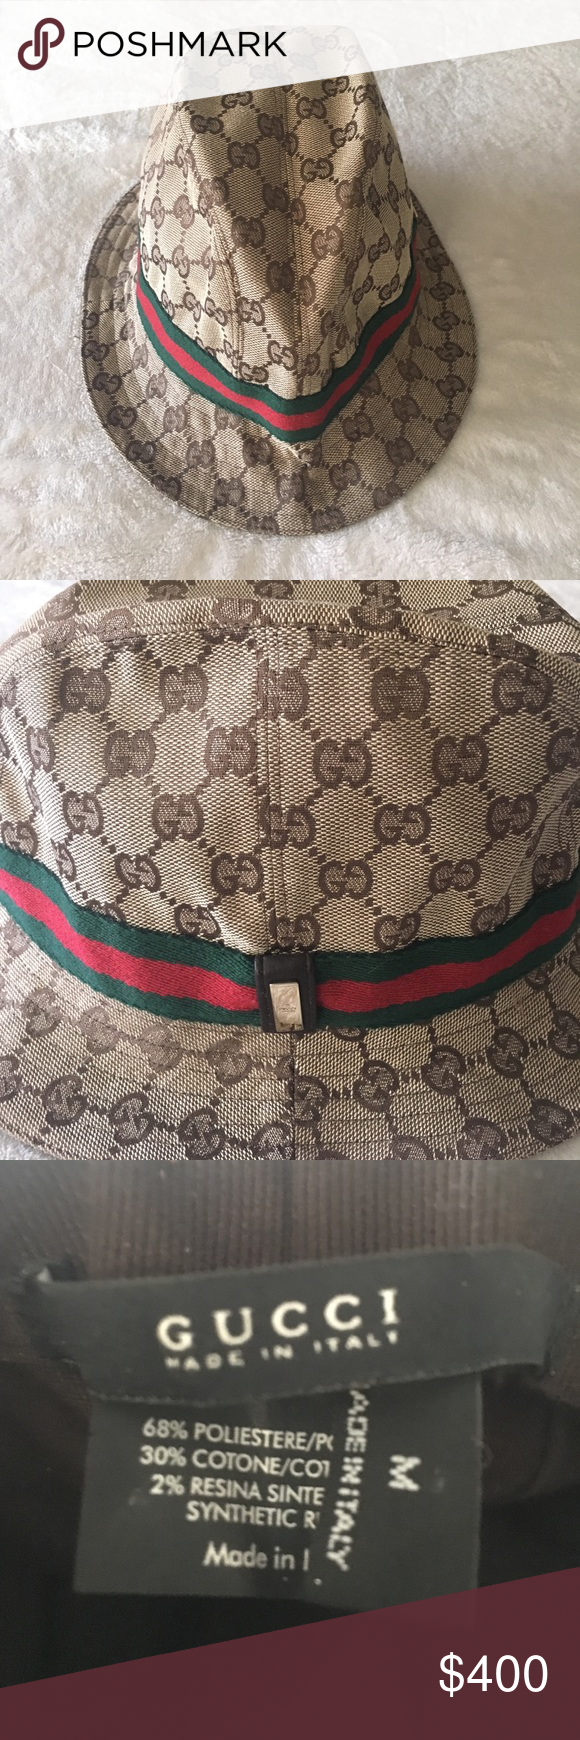 546baf940ee39 Gucci vintage fedora Authentic Vintage Gucci Hat. Impeccable  condition...worn once. This hat is amazing!!!!! Gucci Accessories Hats